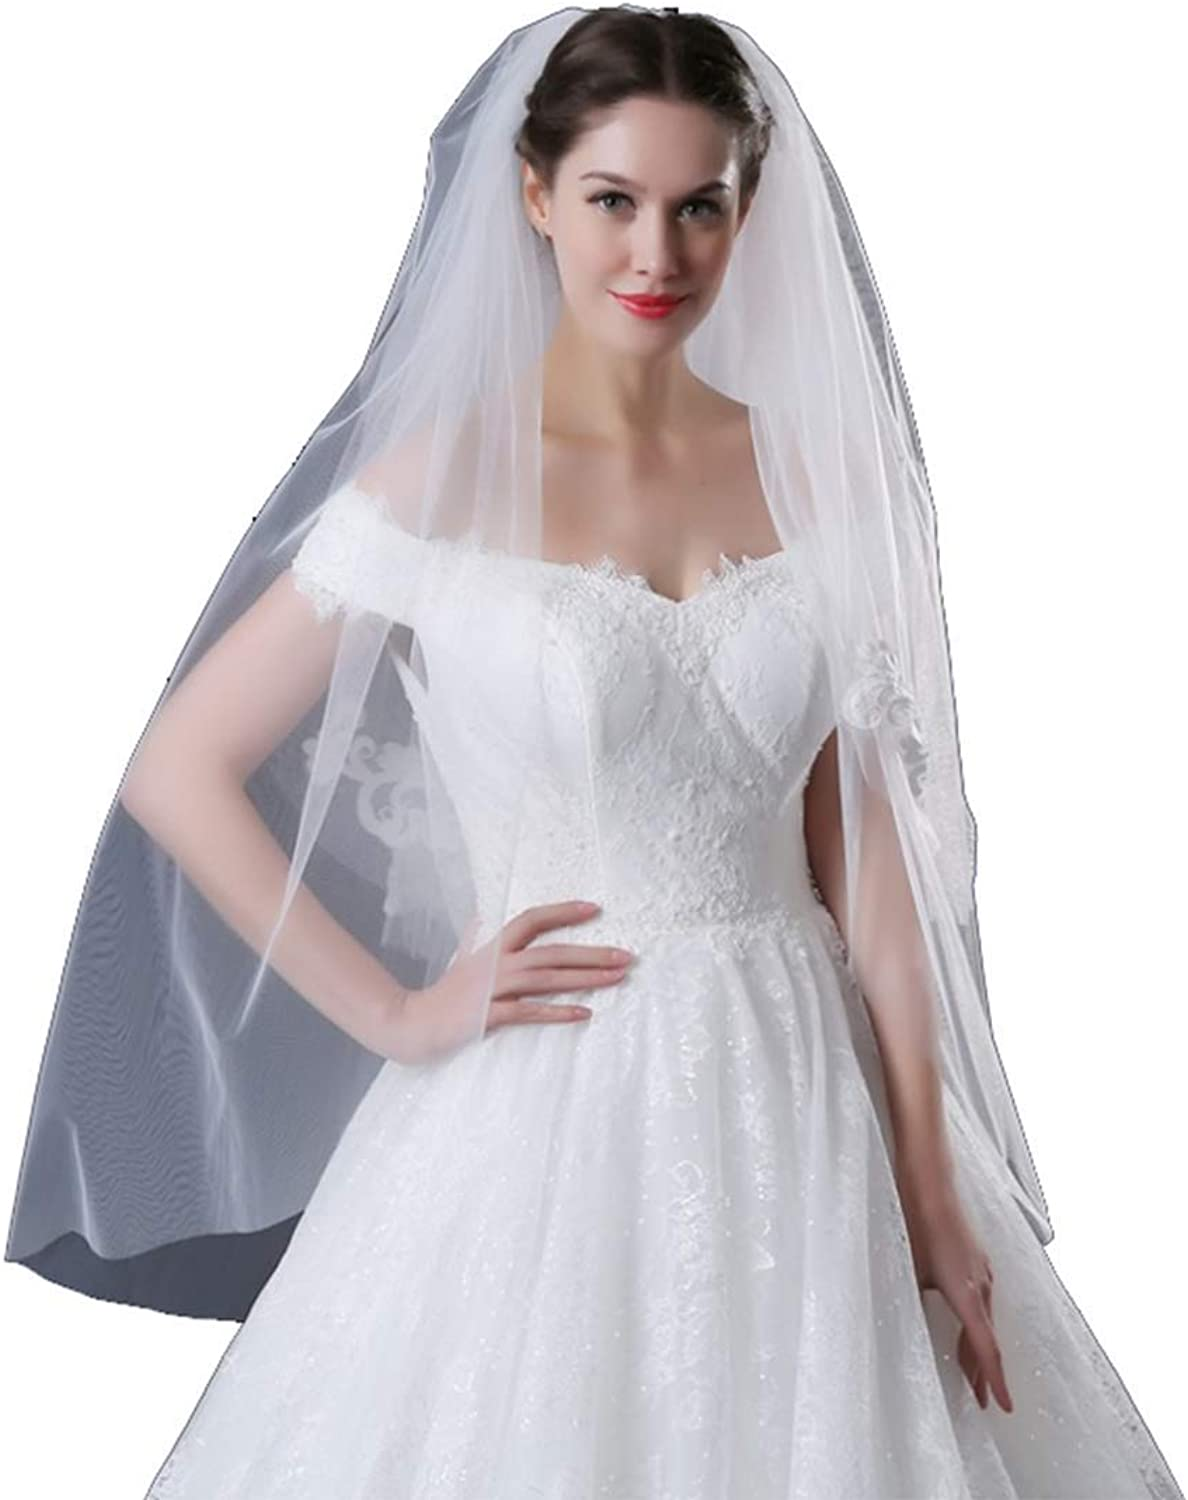 Campsis Women's Handmade Lace Bride Wedding Veil 2 Layers bridal Veil White Waist Bridal Hair Accessories Tulle Veil